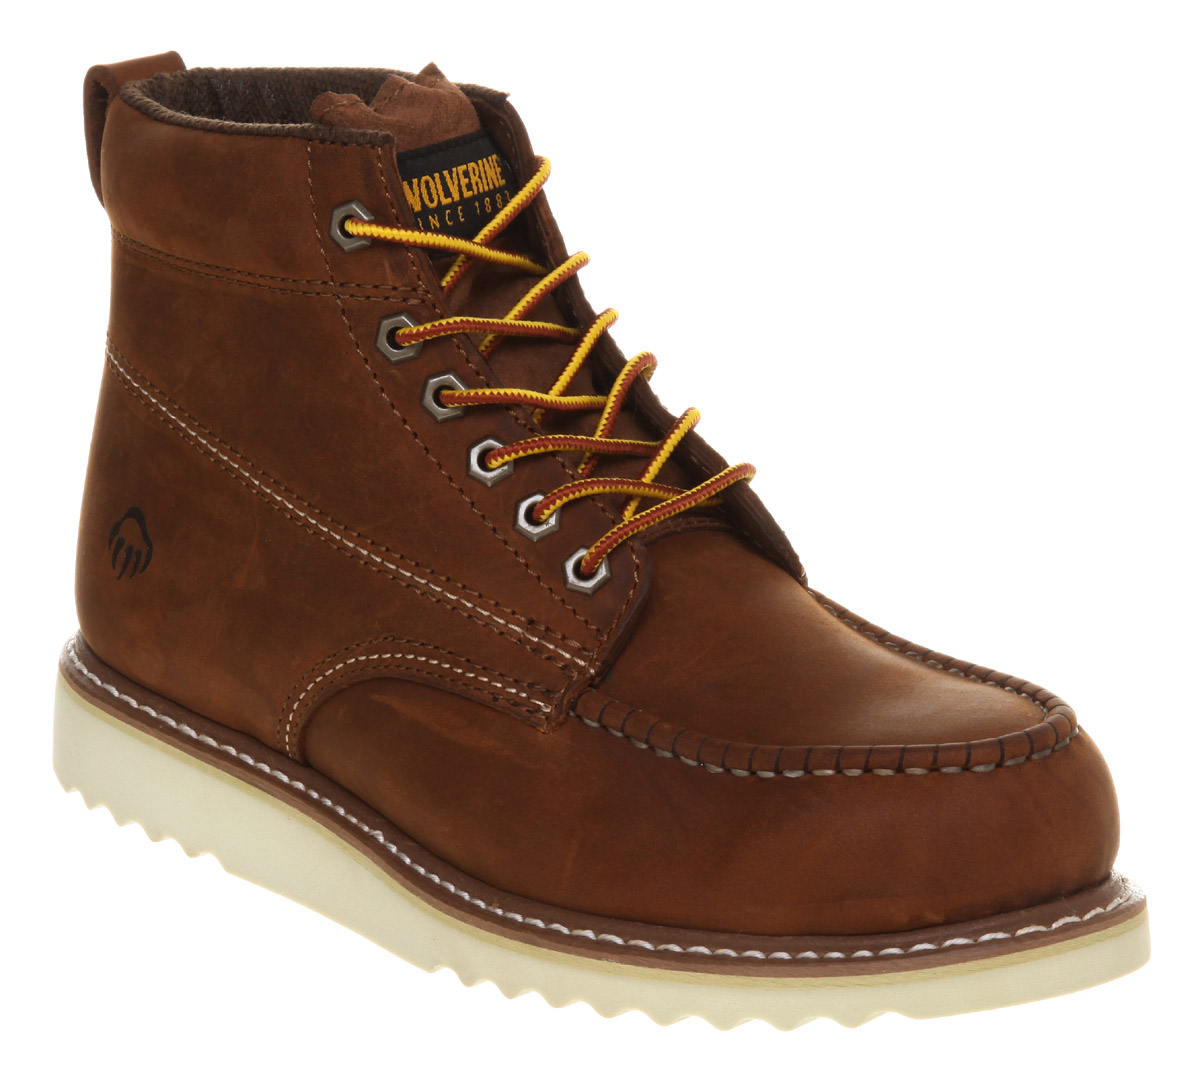 mens wolverine apprentice wedge boot leather boots ebay